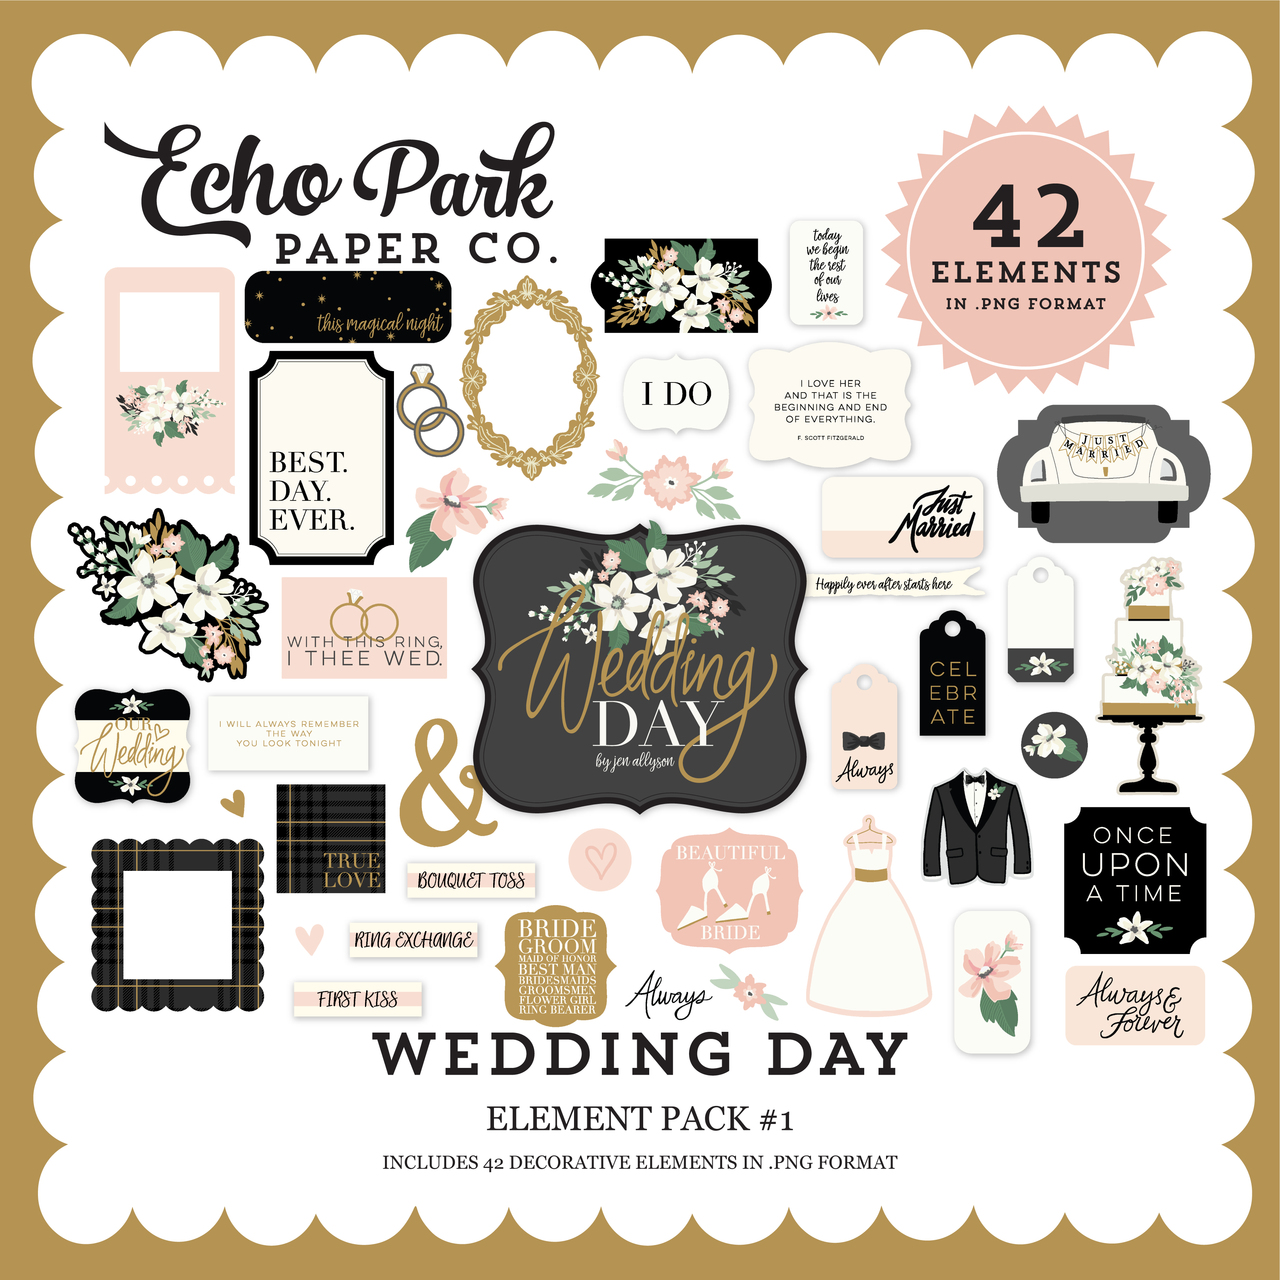 Wedding Day Element Pack #1